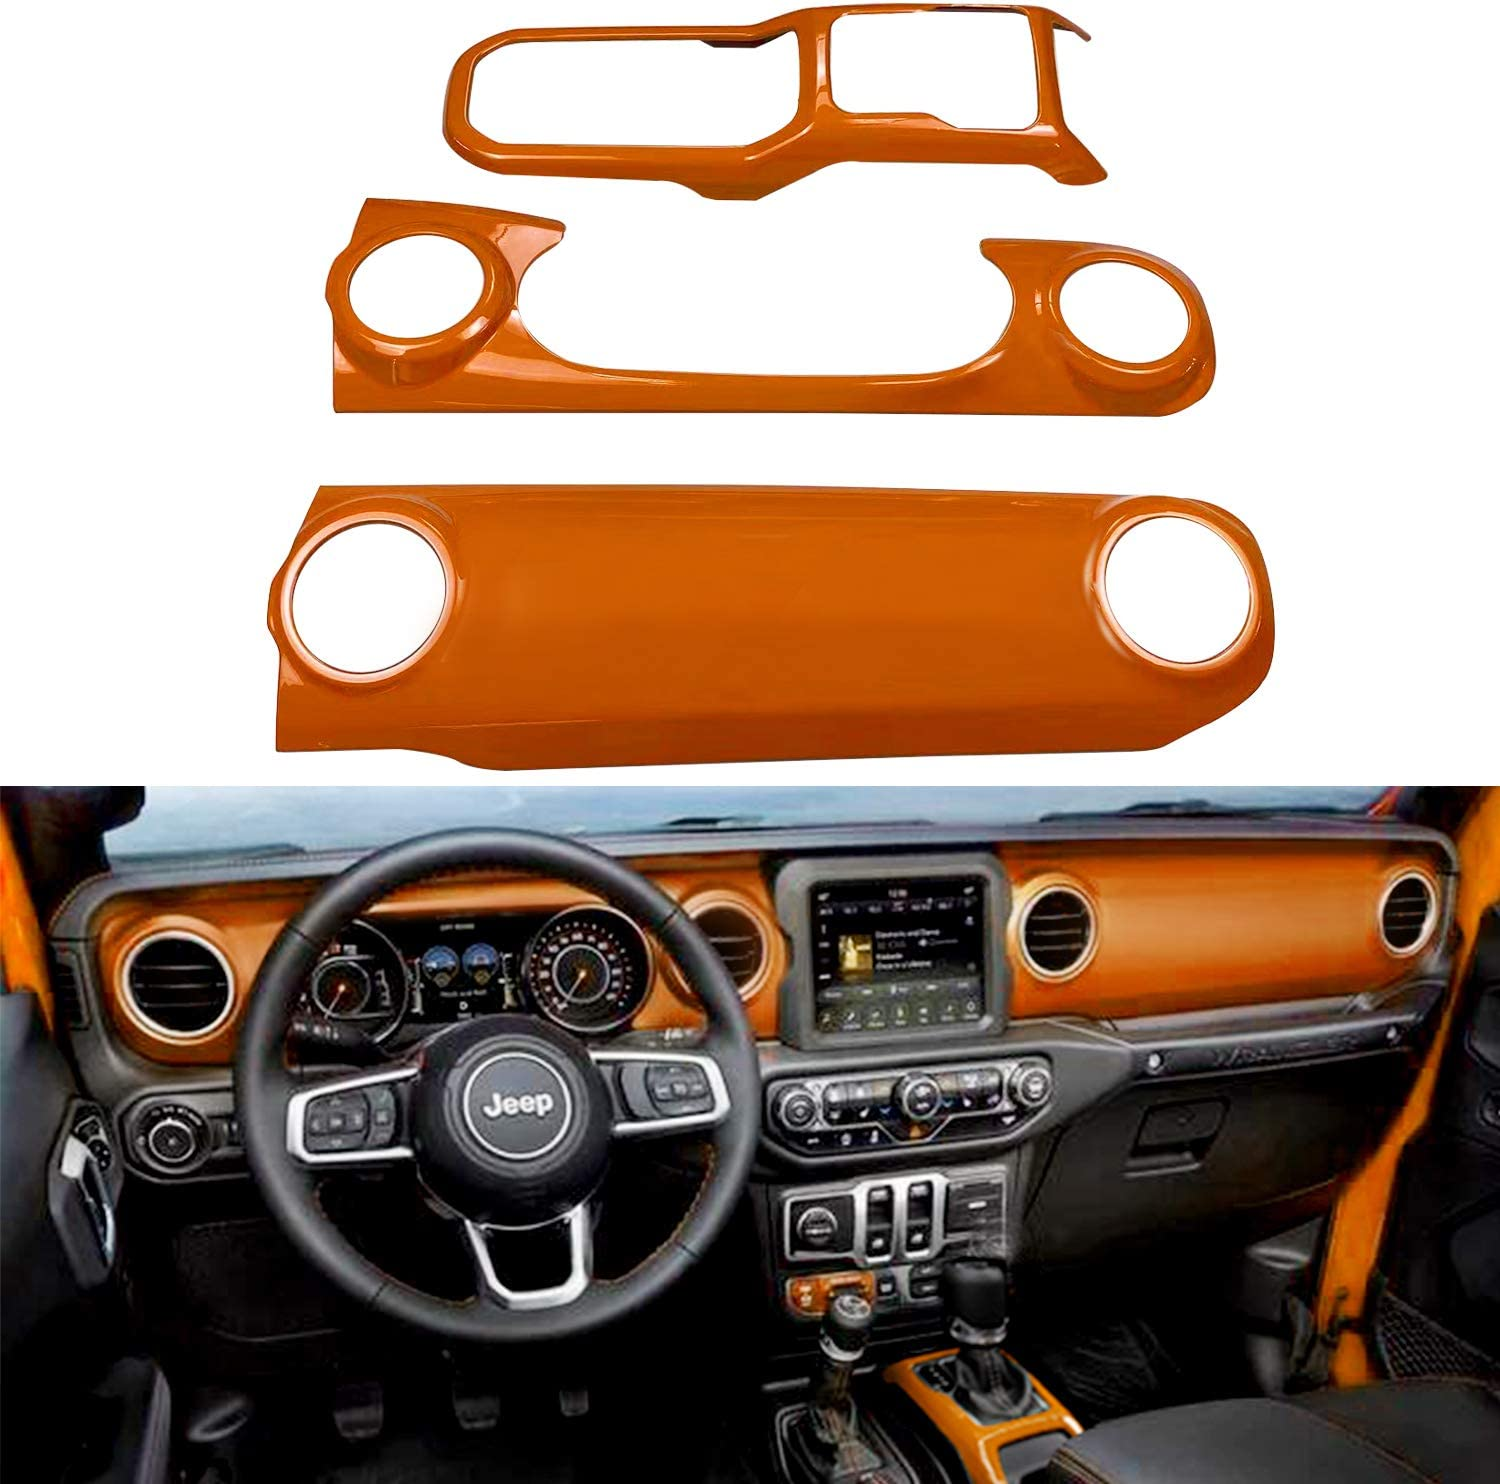 Bolaxin for Jeep Accessories ABS Dashboard Console Center Low price Manufacturer OFFicial shop Panel